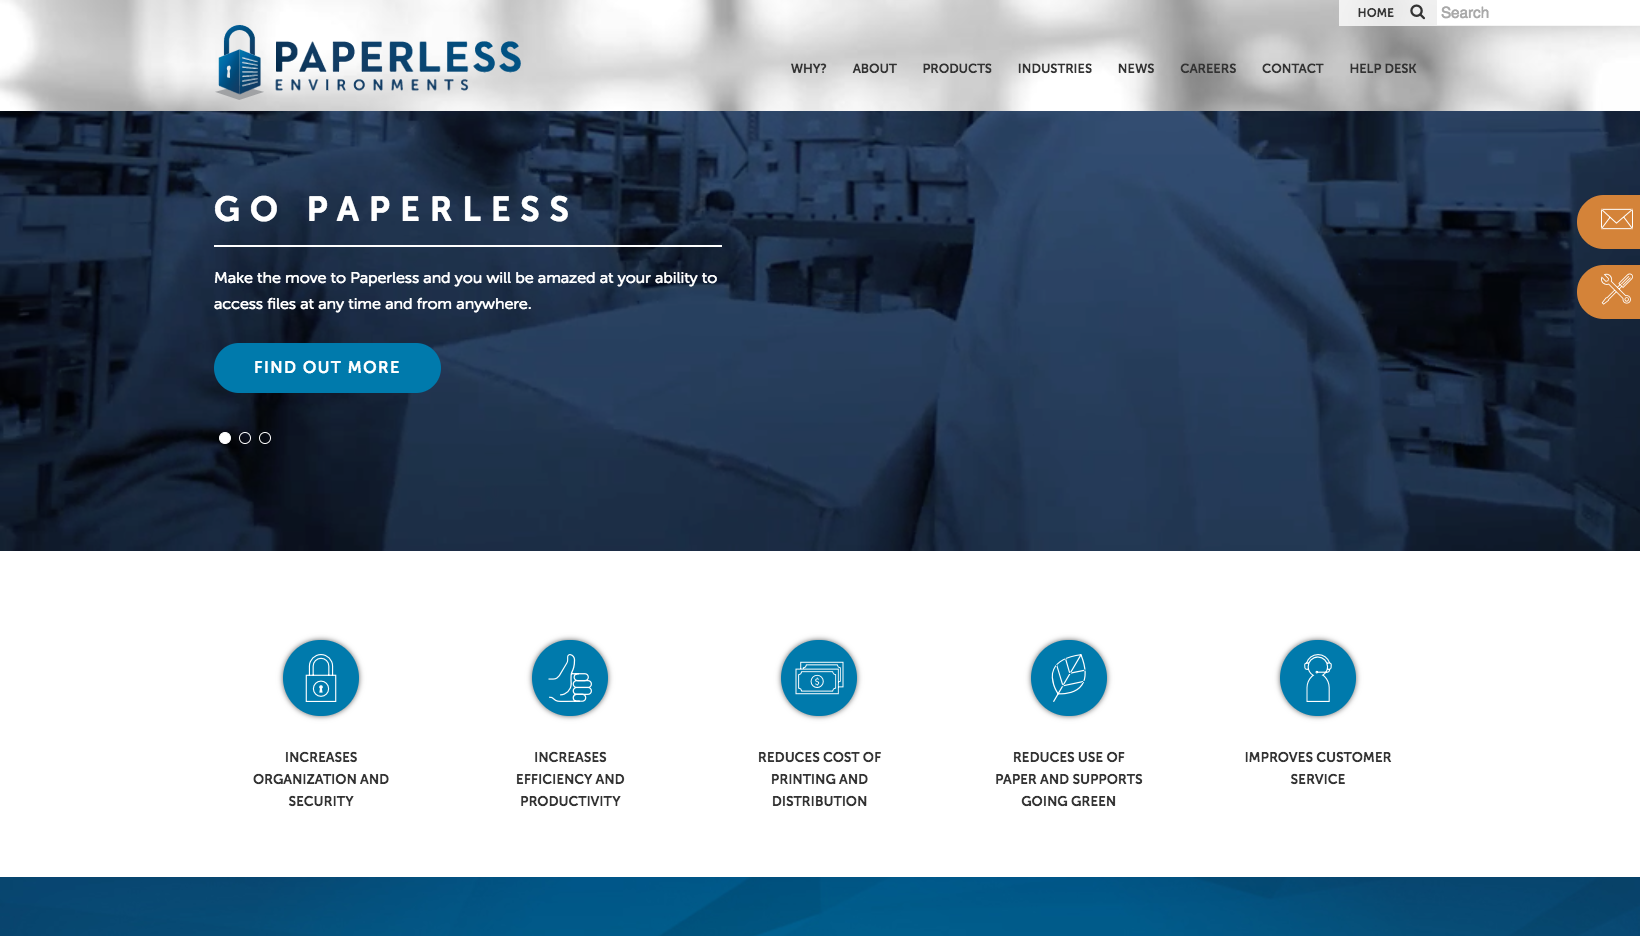 Paperless Environments Website Screenshot